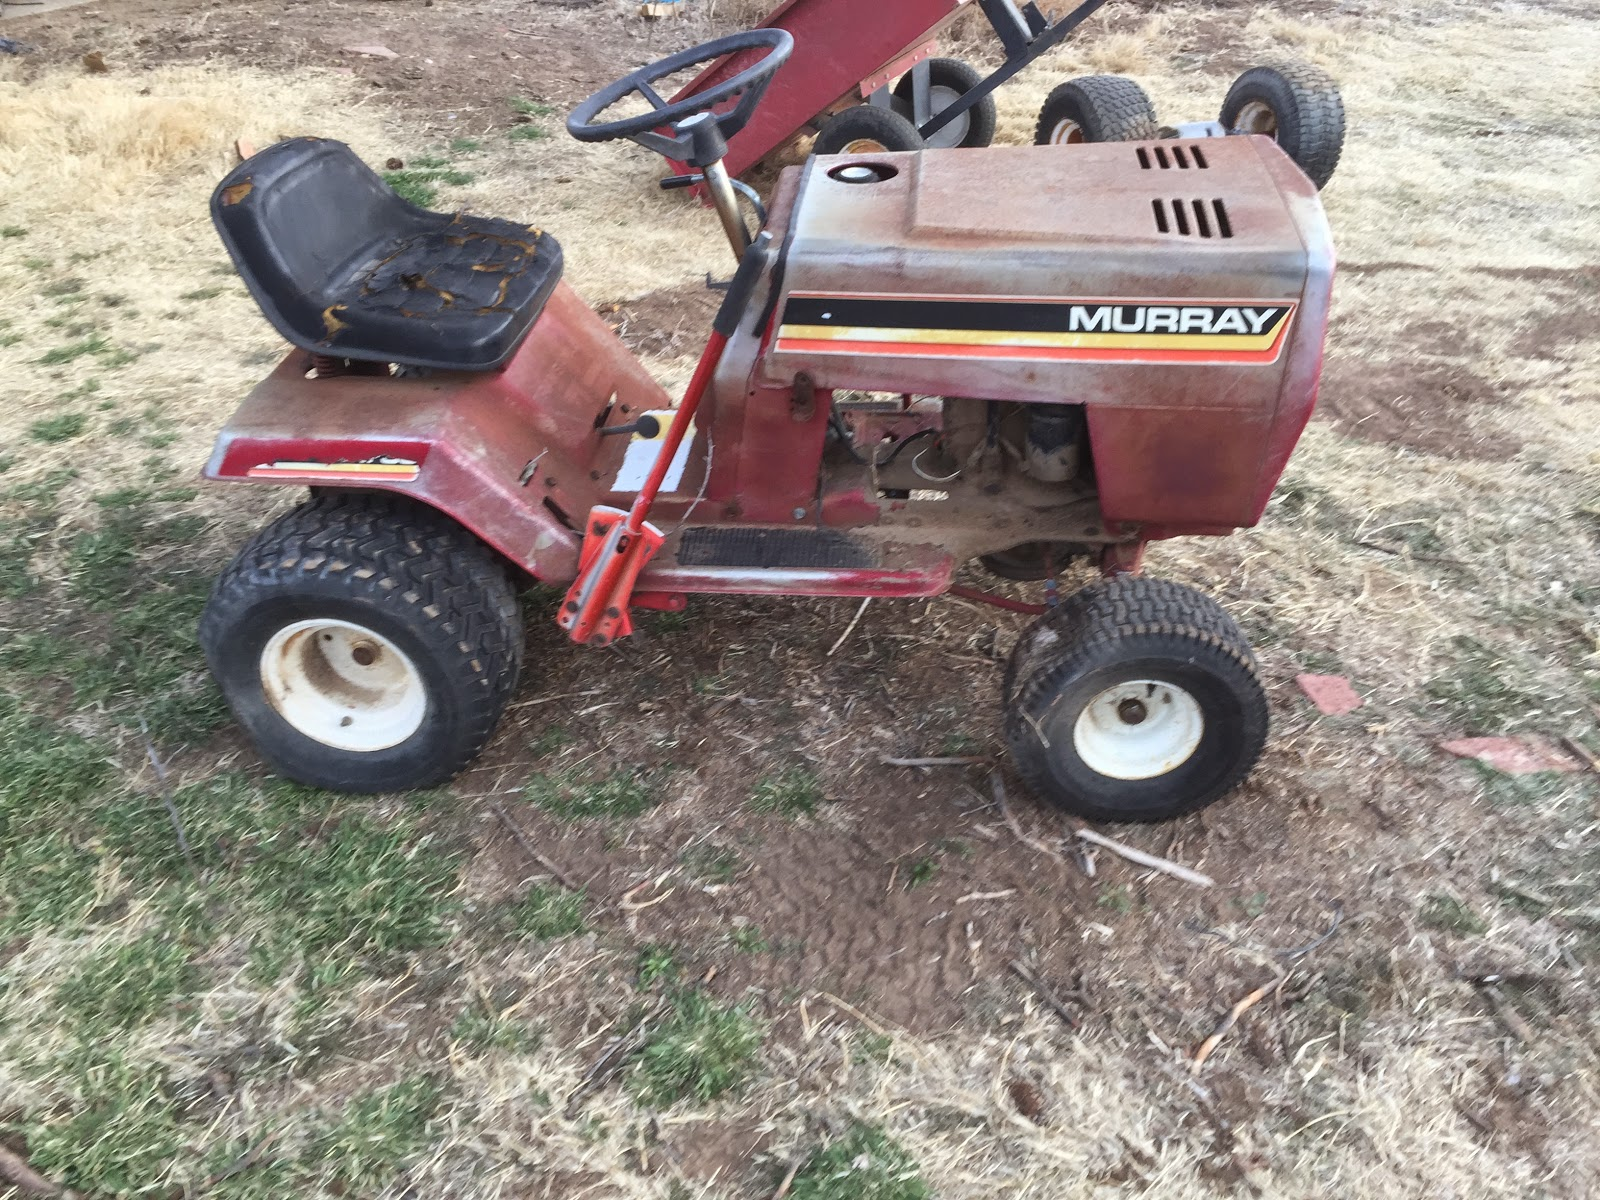 Murray Lawn Tractor Transaxle : Zombie engines murray